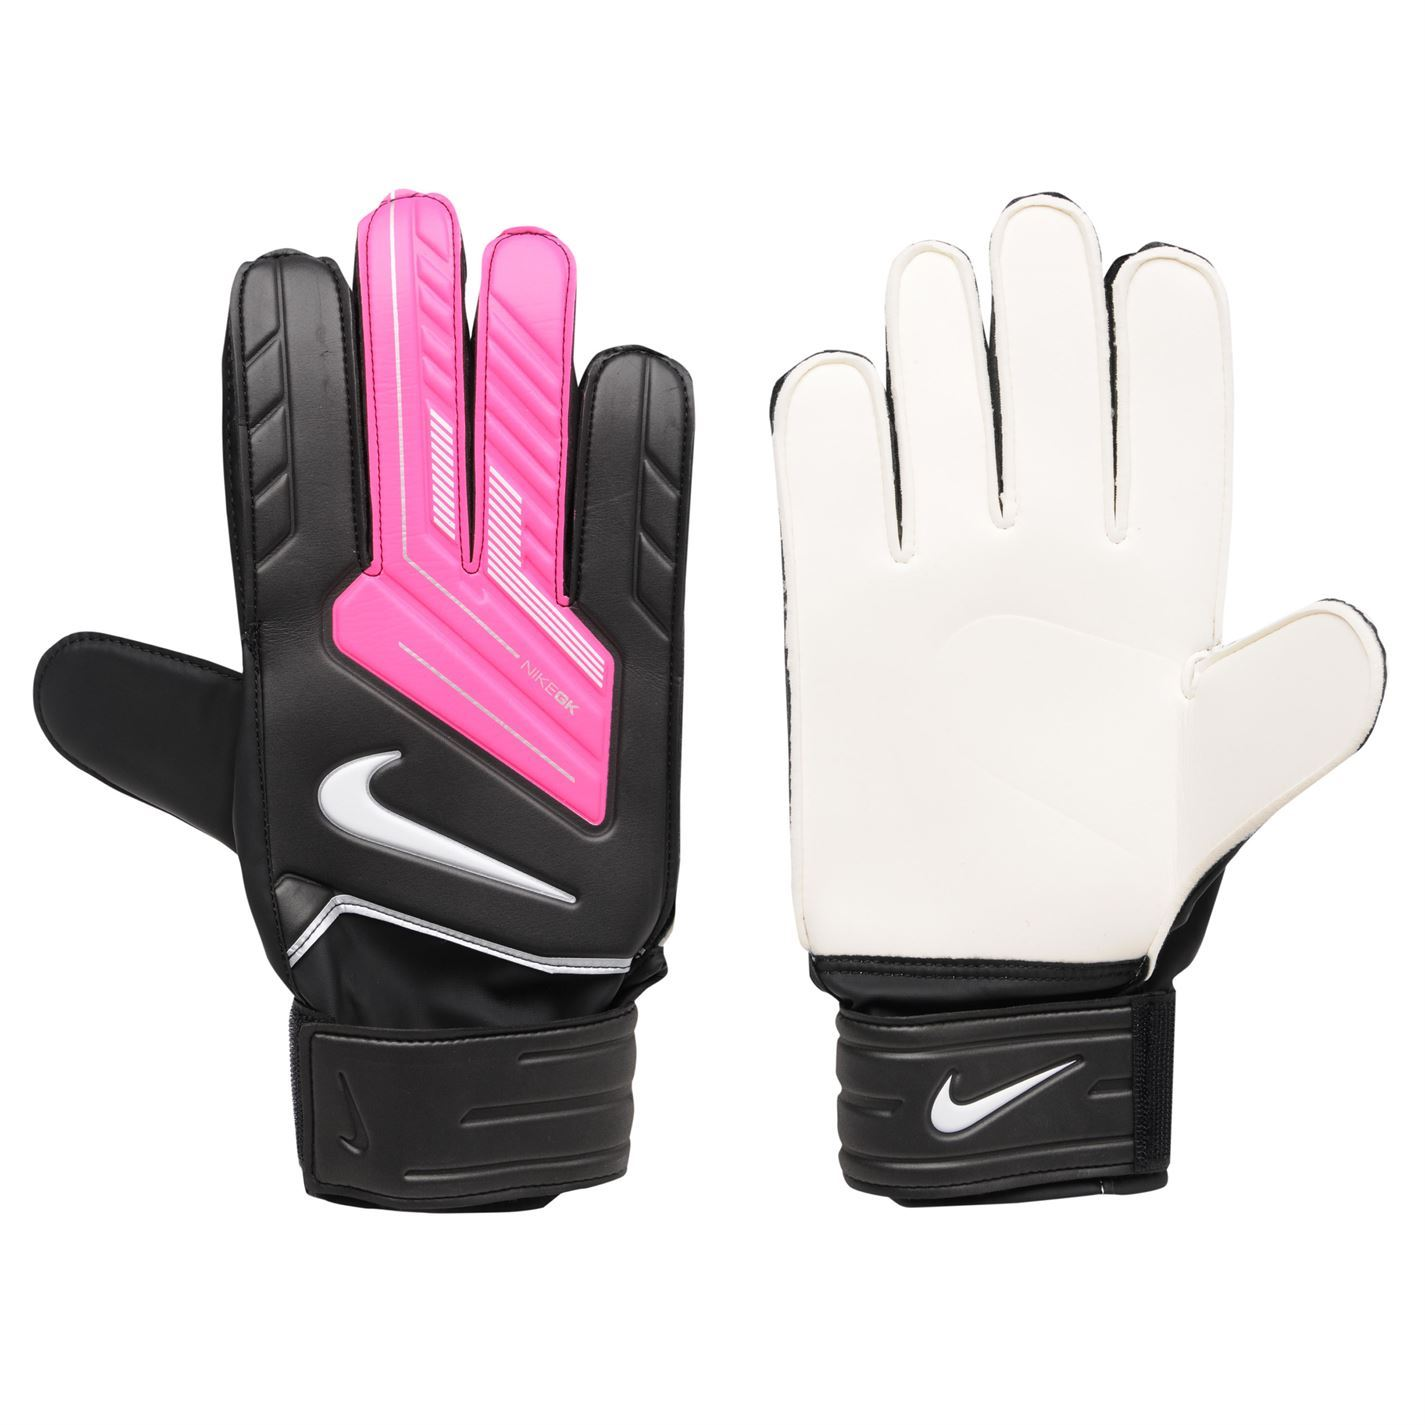 Nike Soccer Gloves: Nike Match Goalkeeper Gloves Black/Pink/Whit Football